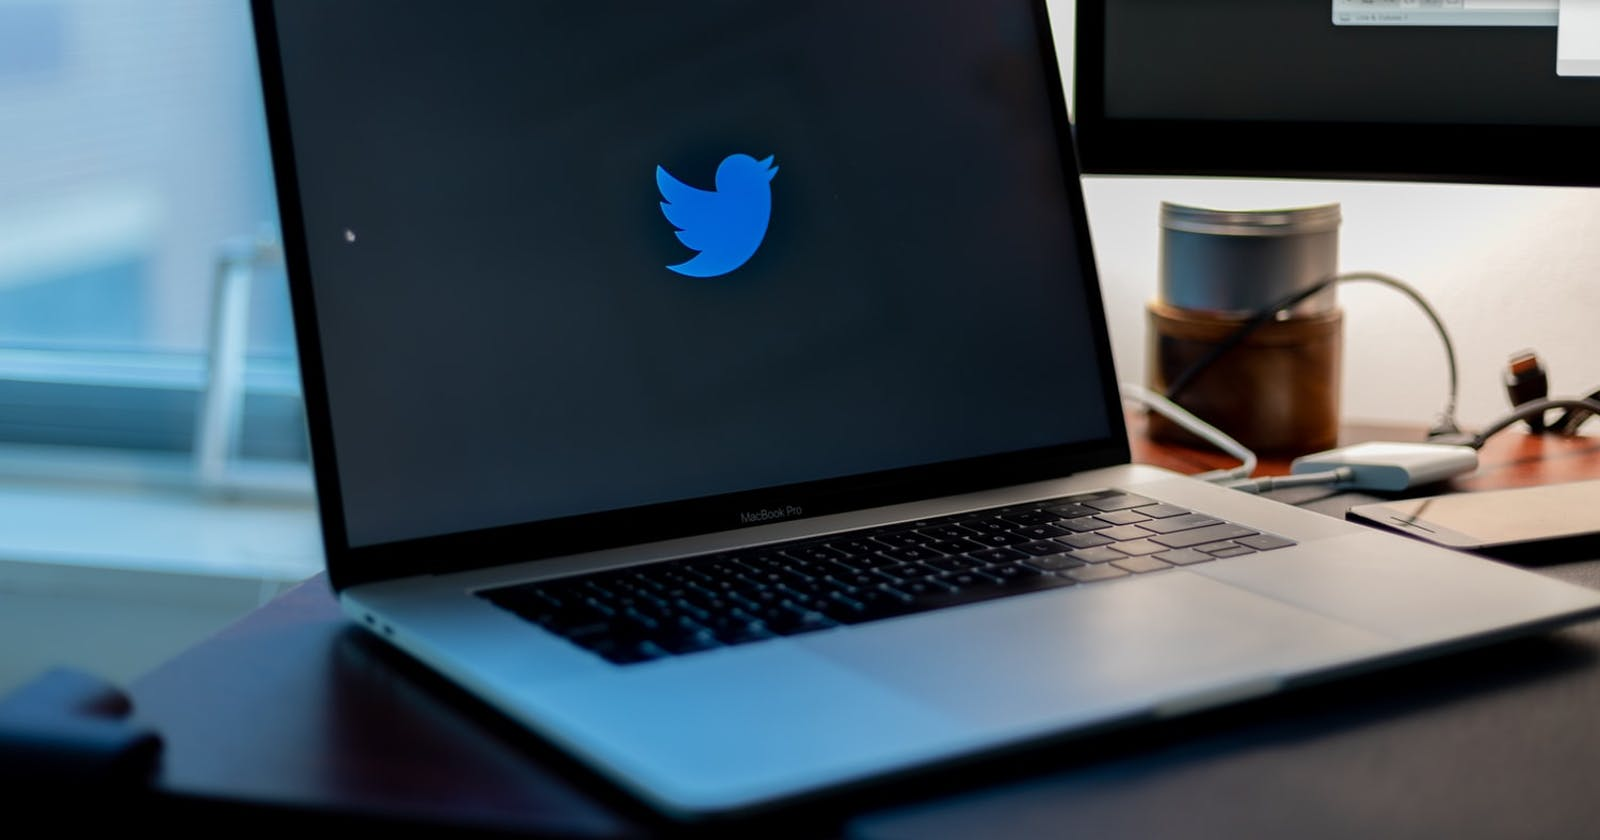 My List of 9 Amazing Developers on Twitter